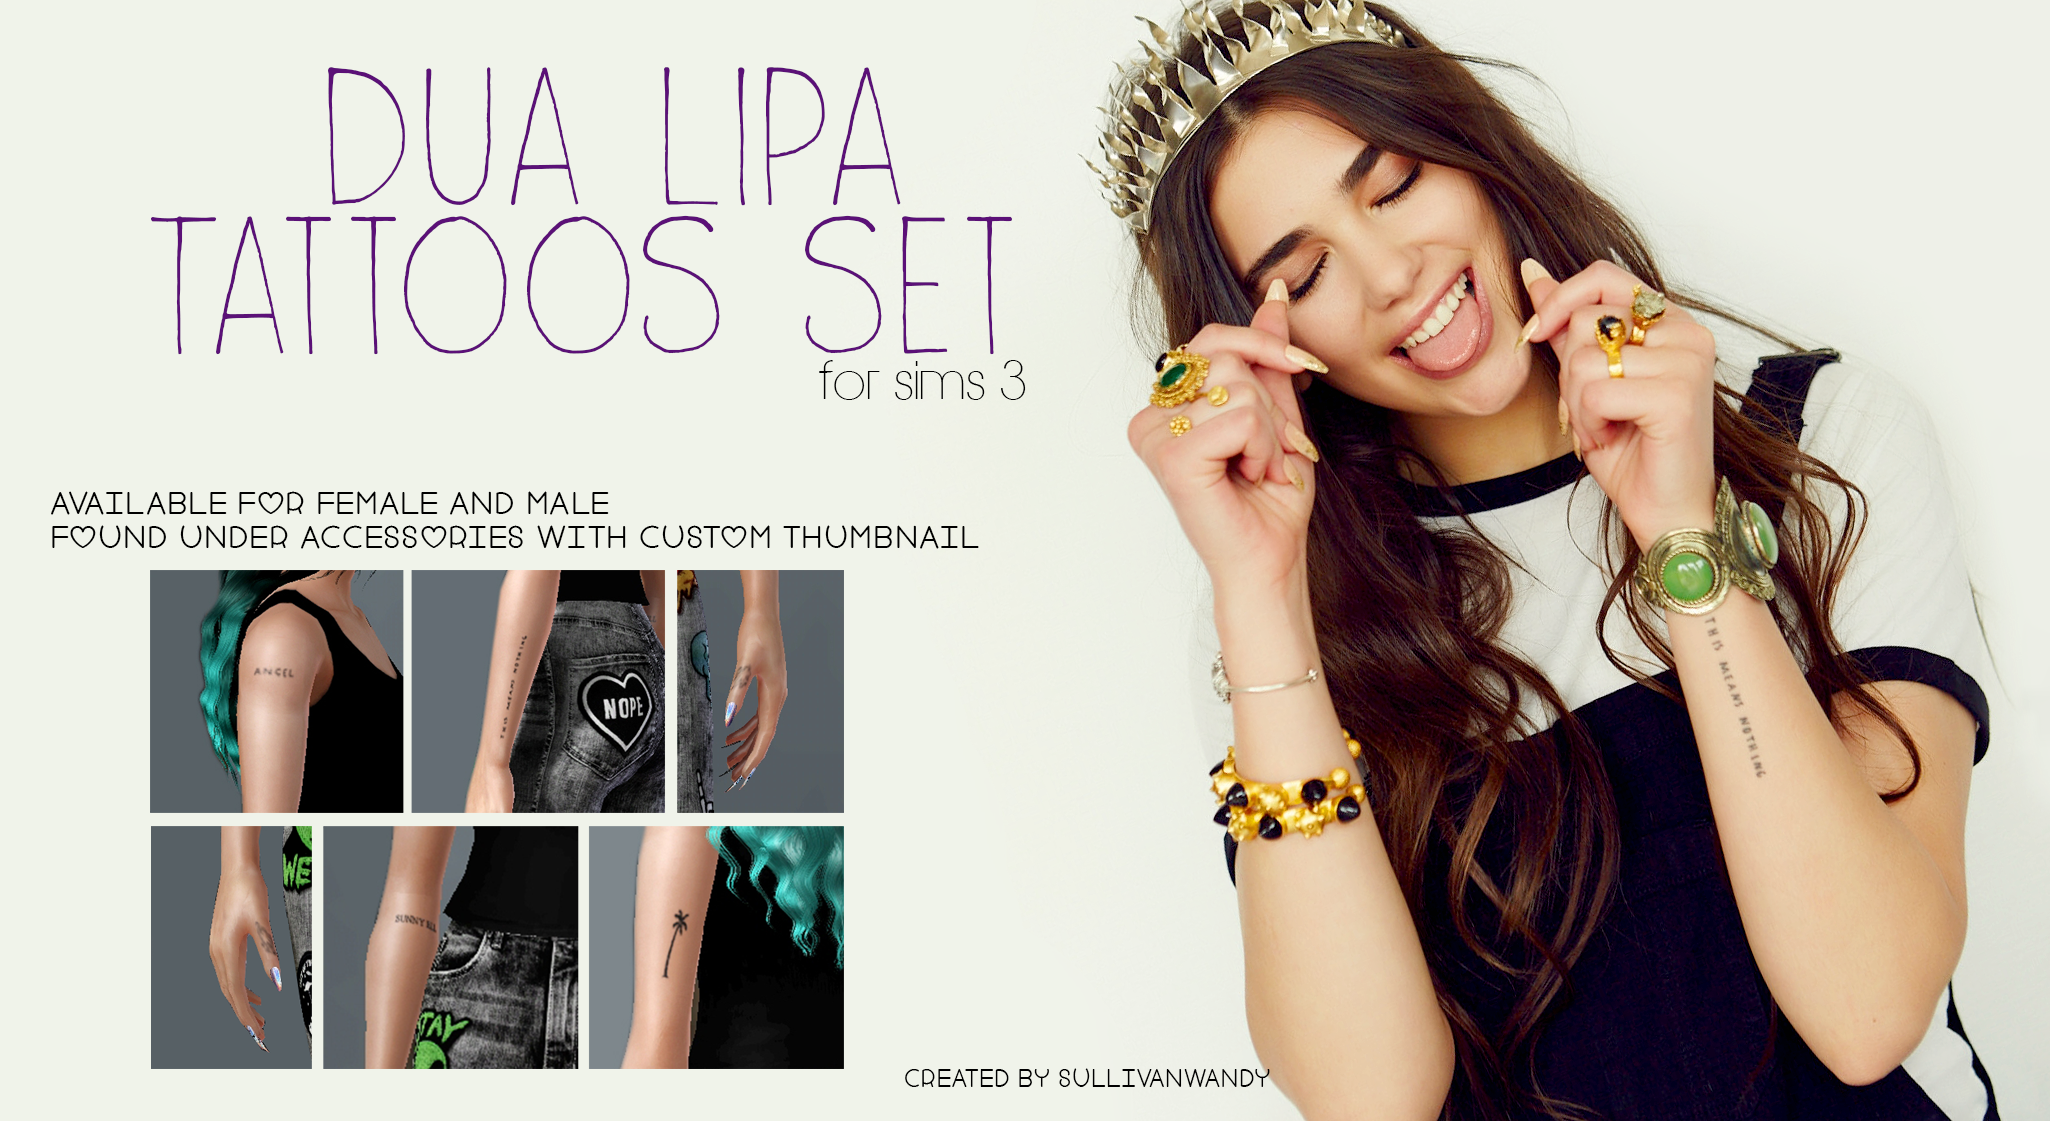 Dua Lipa Tattoo: Dua Lipa Tattoos Set